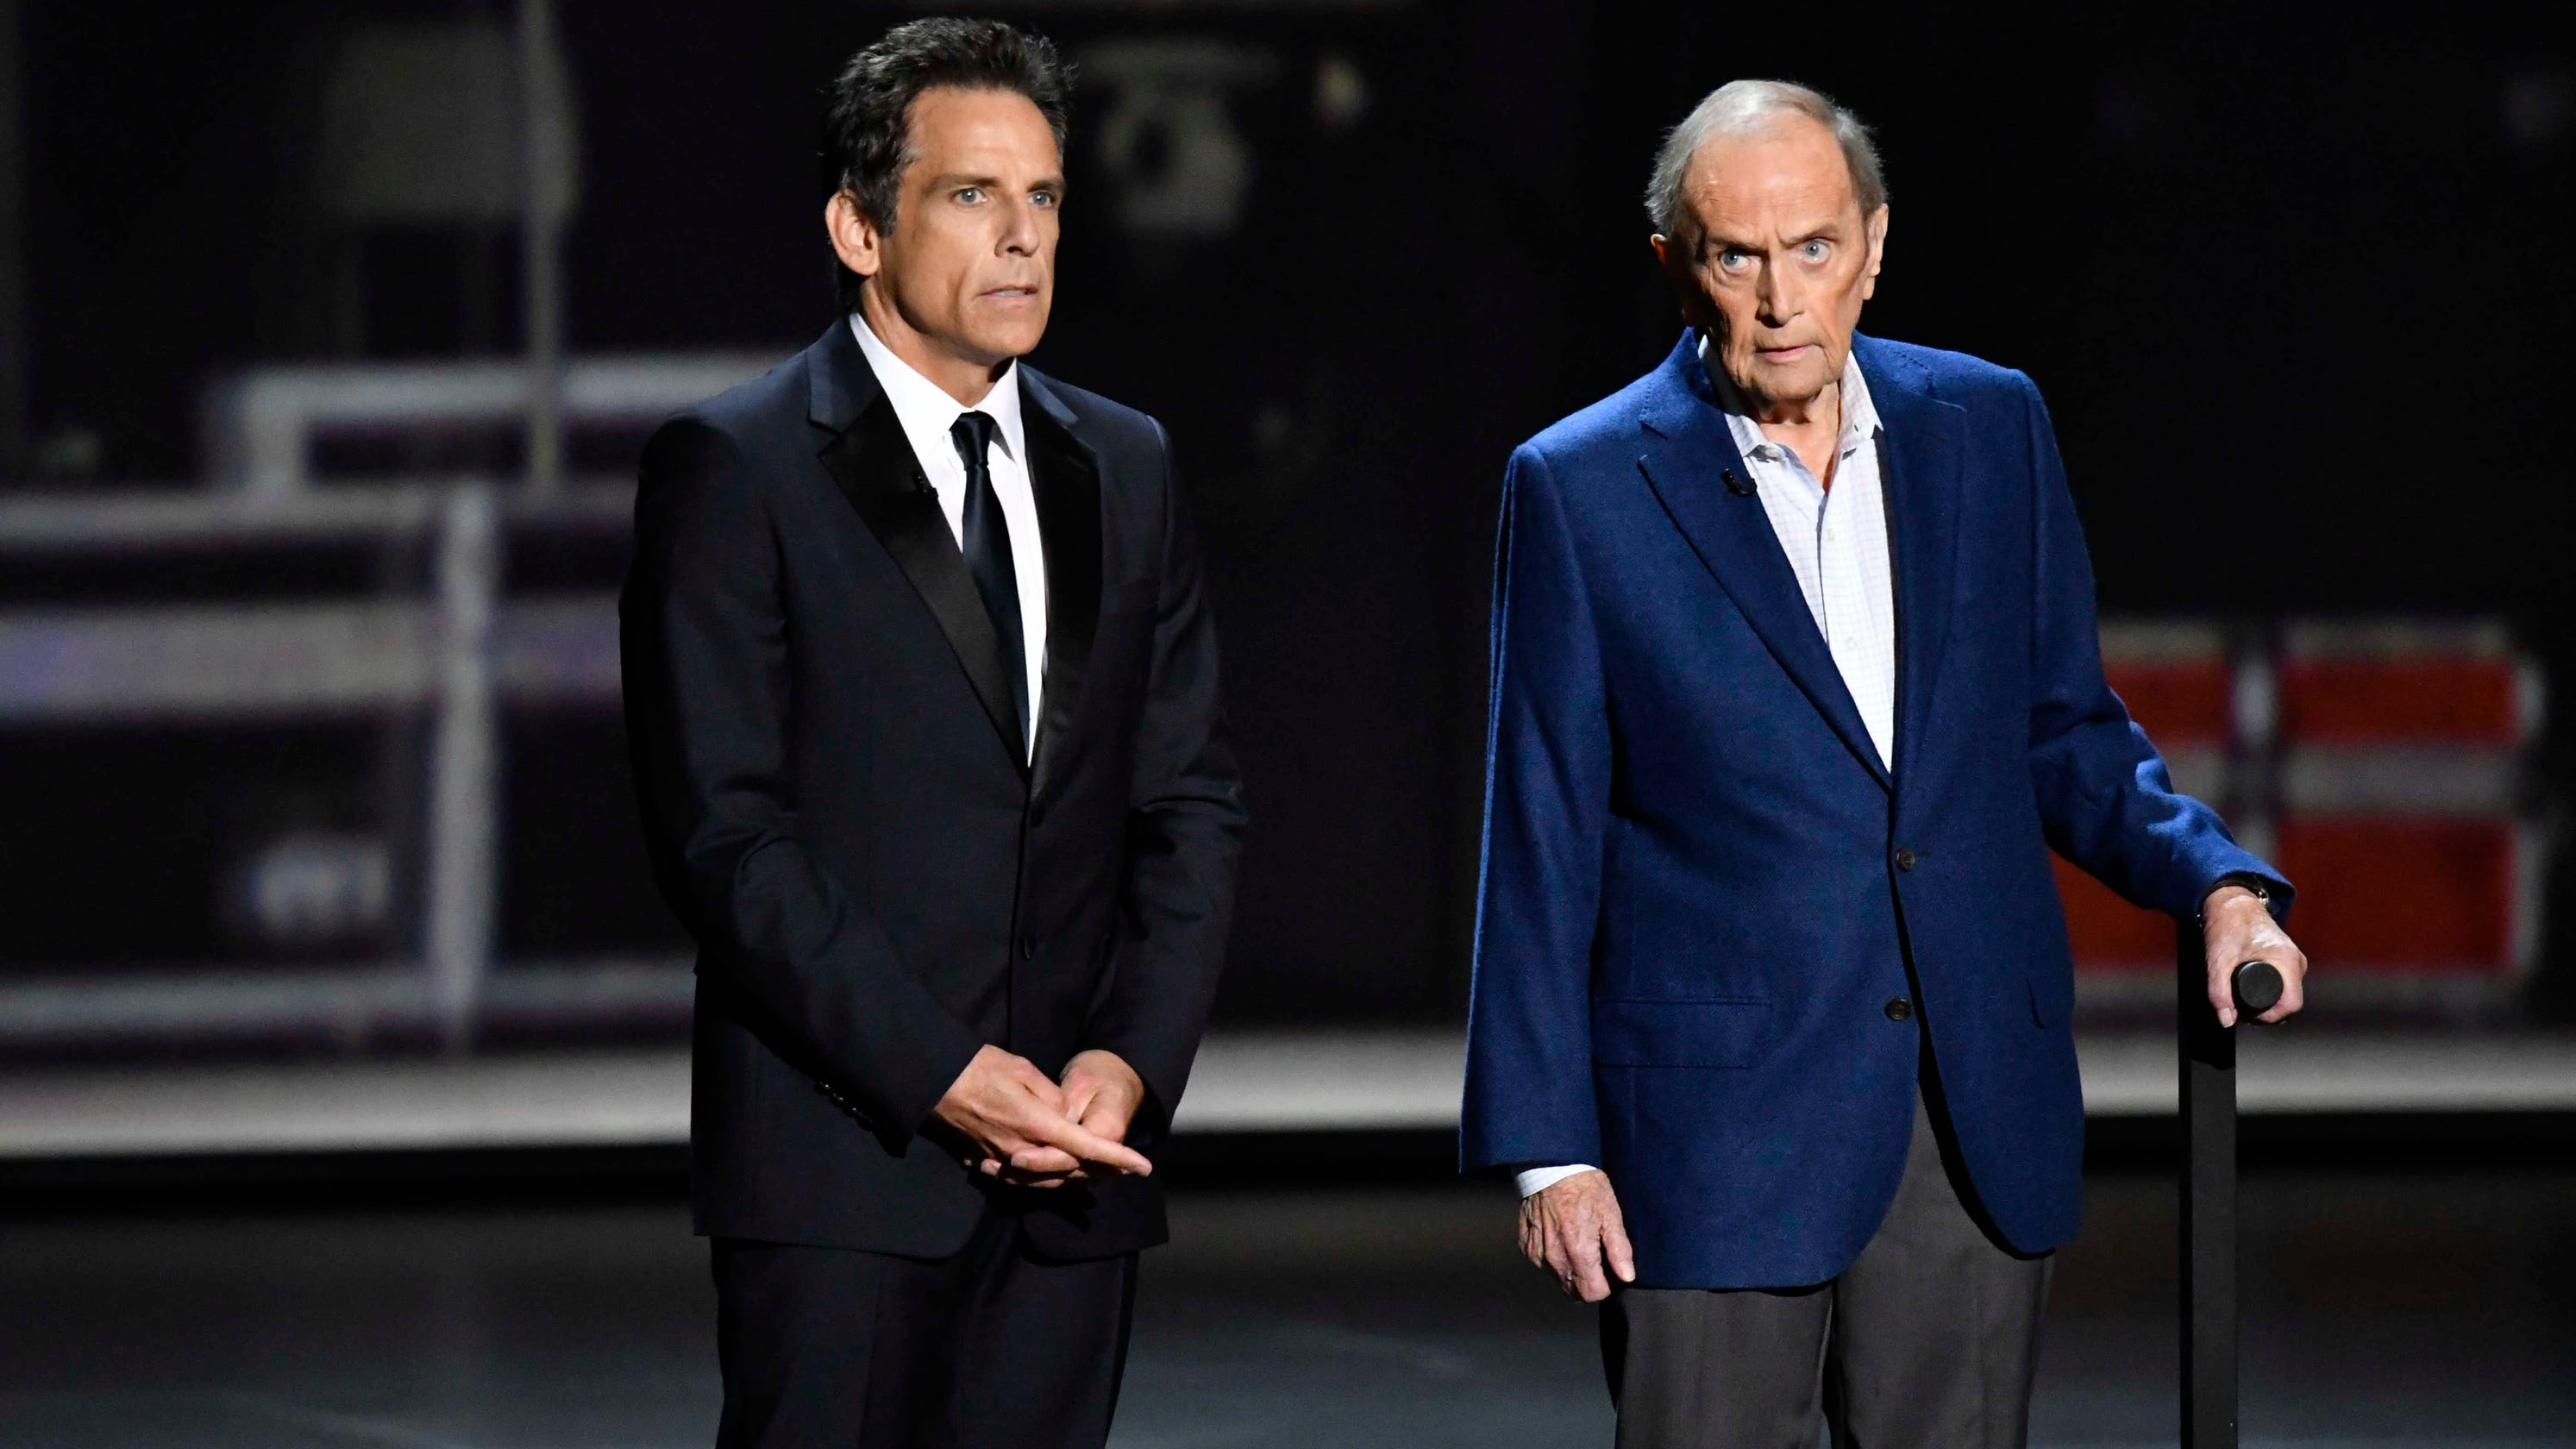 Emmys 2019: 5 moments you missed, from Bob Newhart to Julia Louis-Dreyfus' shocking loss